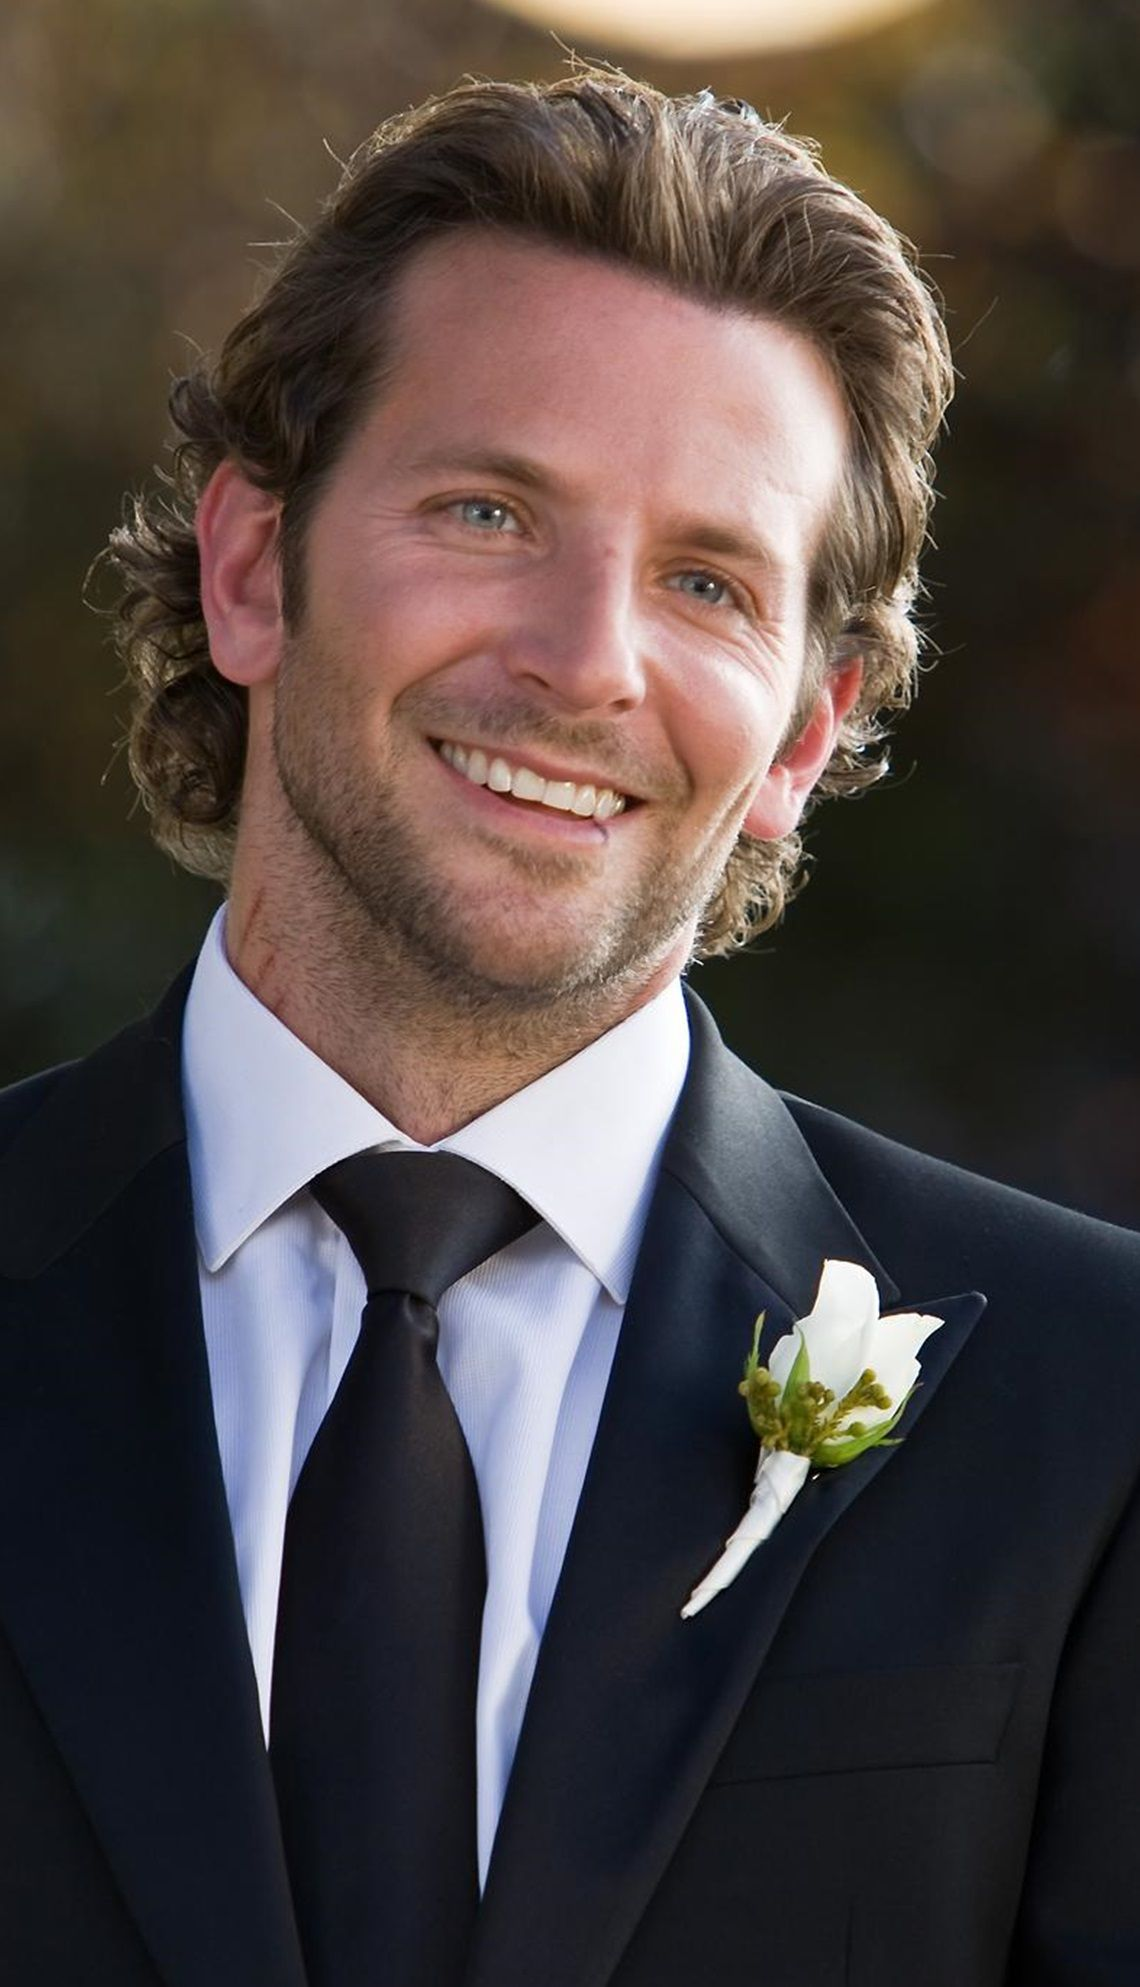 Bradley Cooper Casual Long Hairstyle Great Wedding Hairstyles For